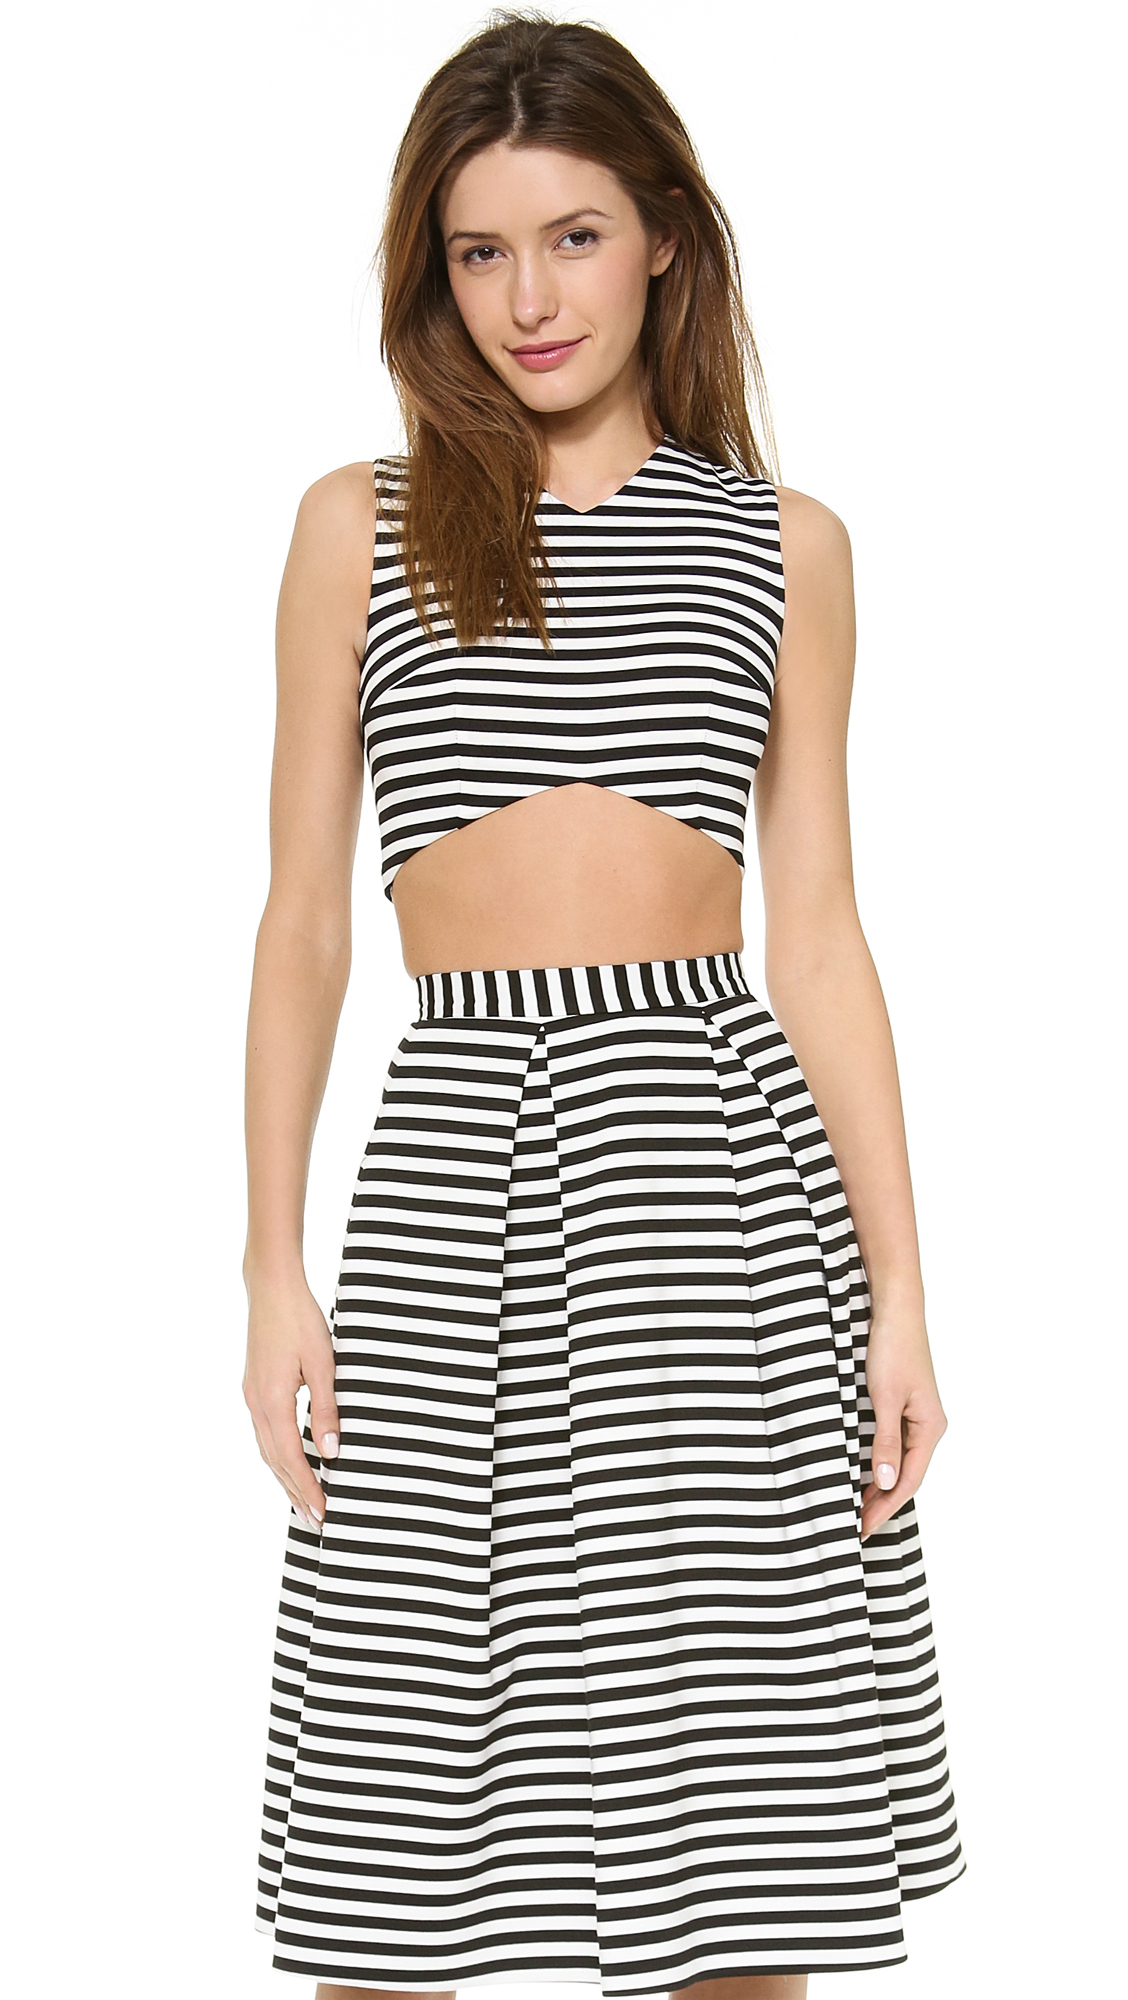 black white striped sports style on trend strapless bandeau top tee tshirt shirt bralet bralette crop top. literally goes with any outfit!